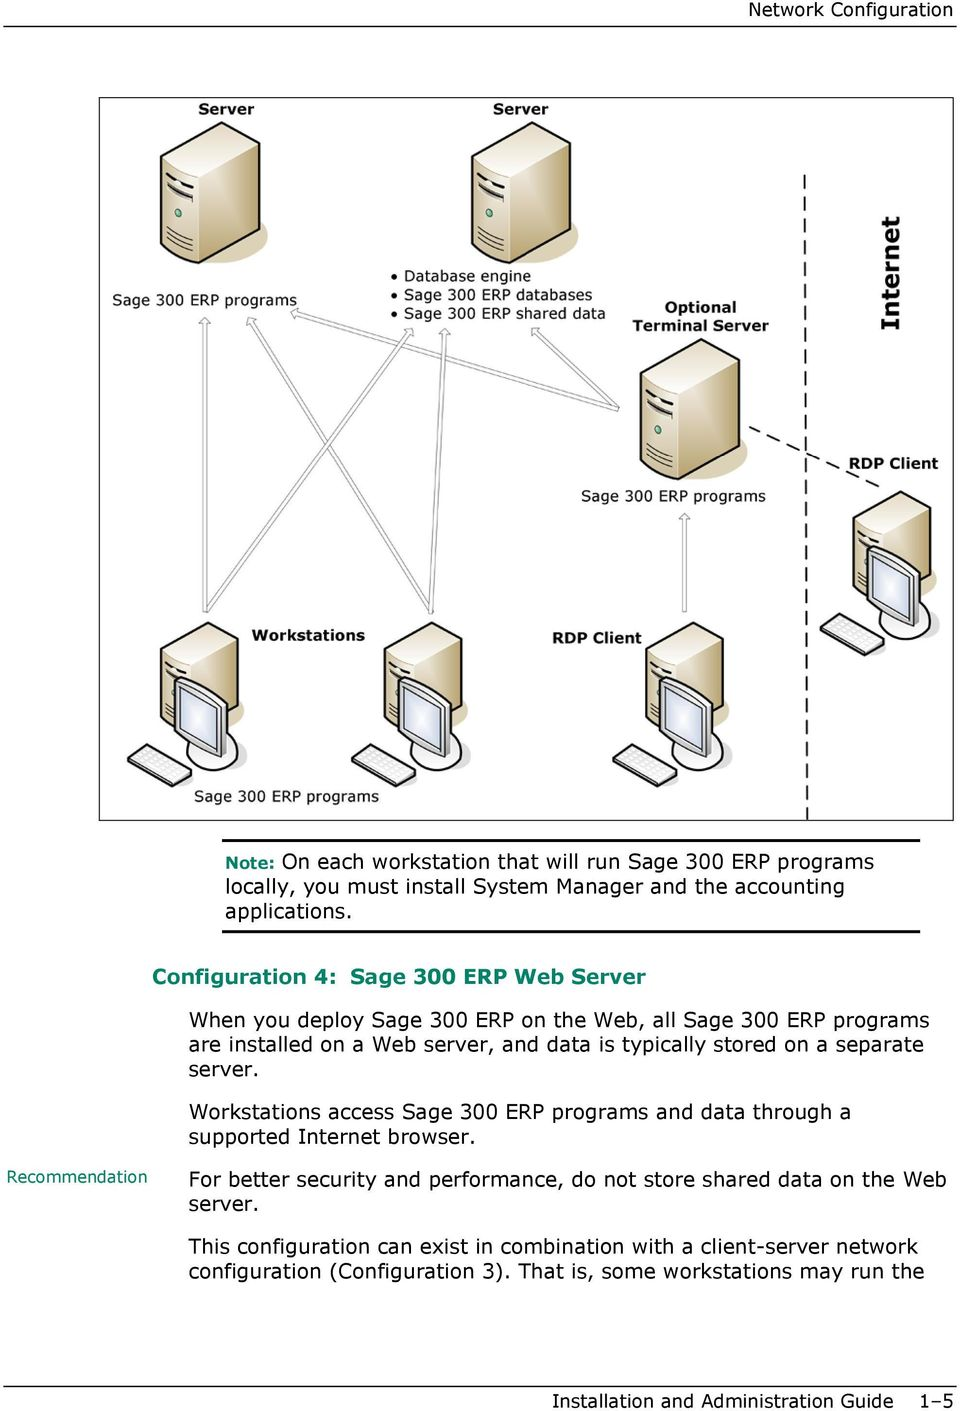 separate server. Workstations access Sage 300 ERP programs and data through a supported Internet browser.